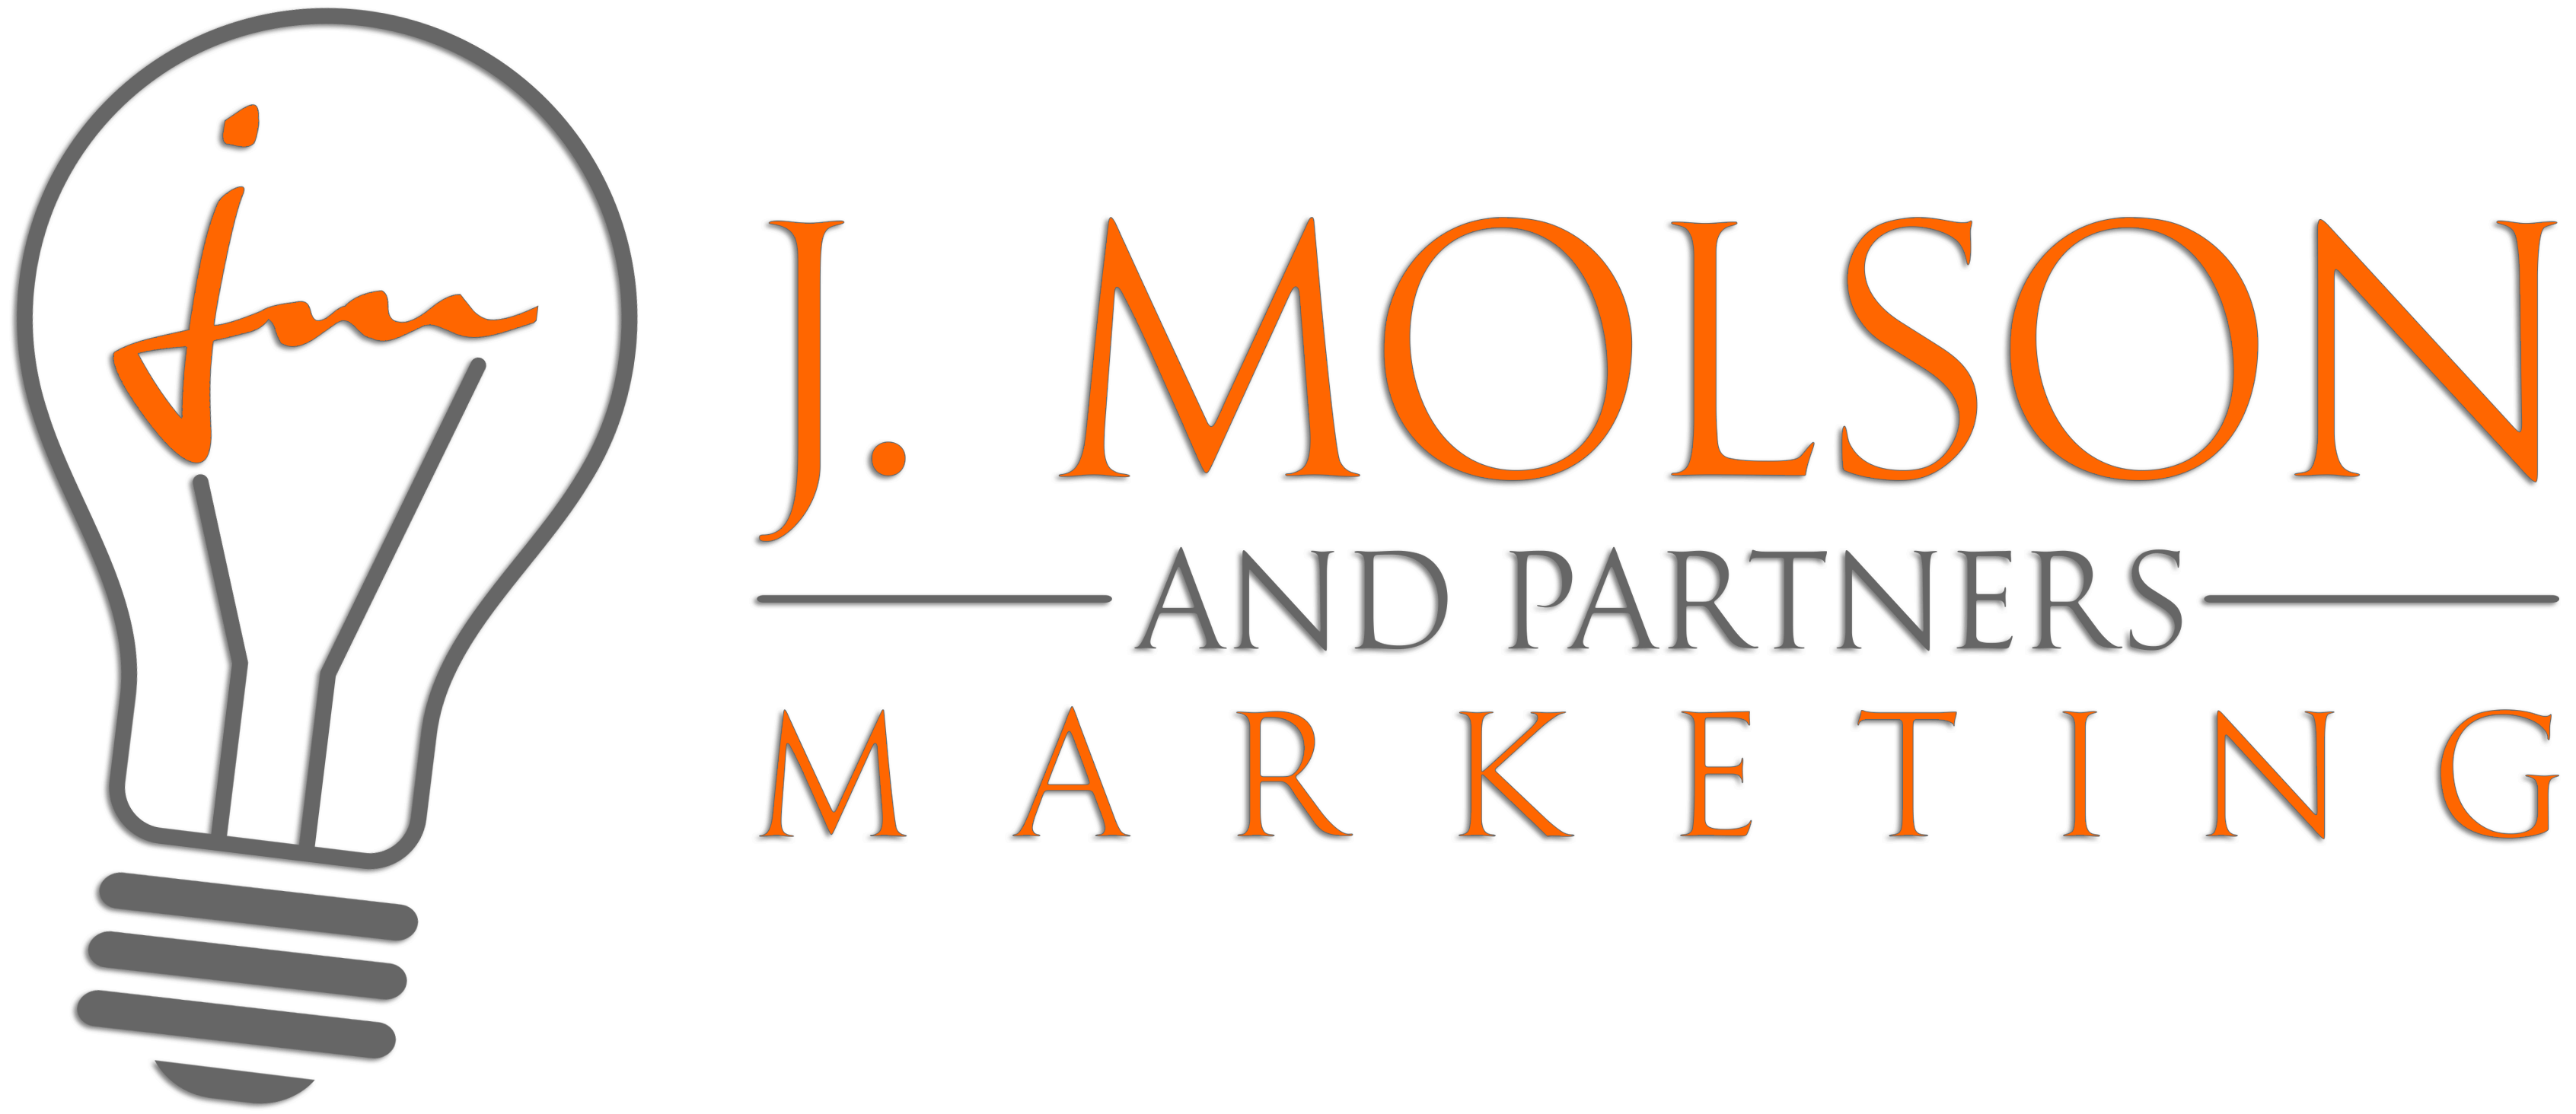 J. Molson & Partners Marketing